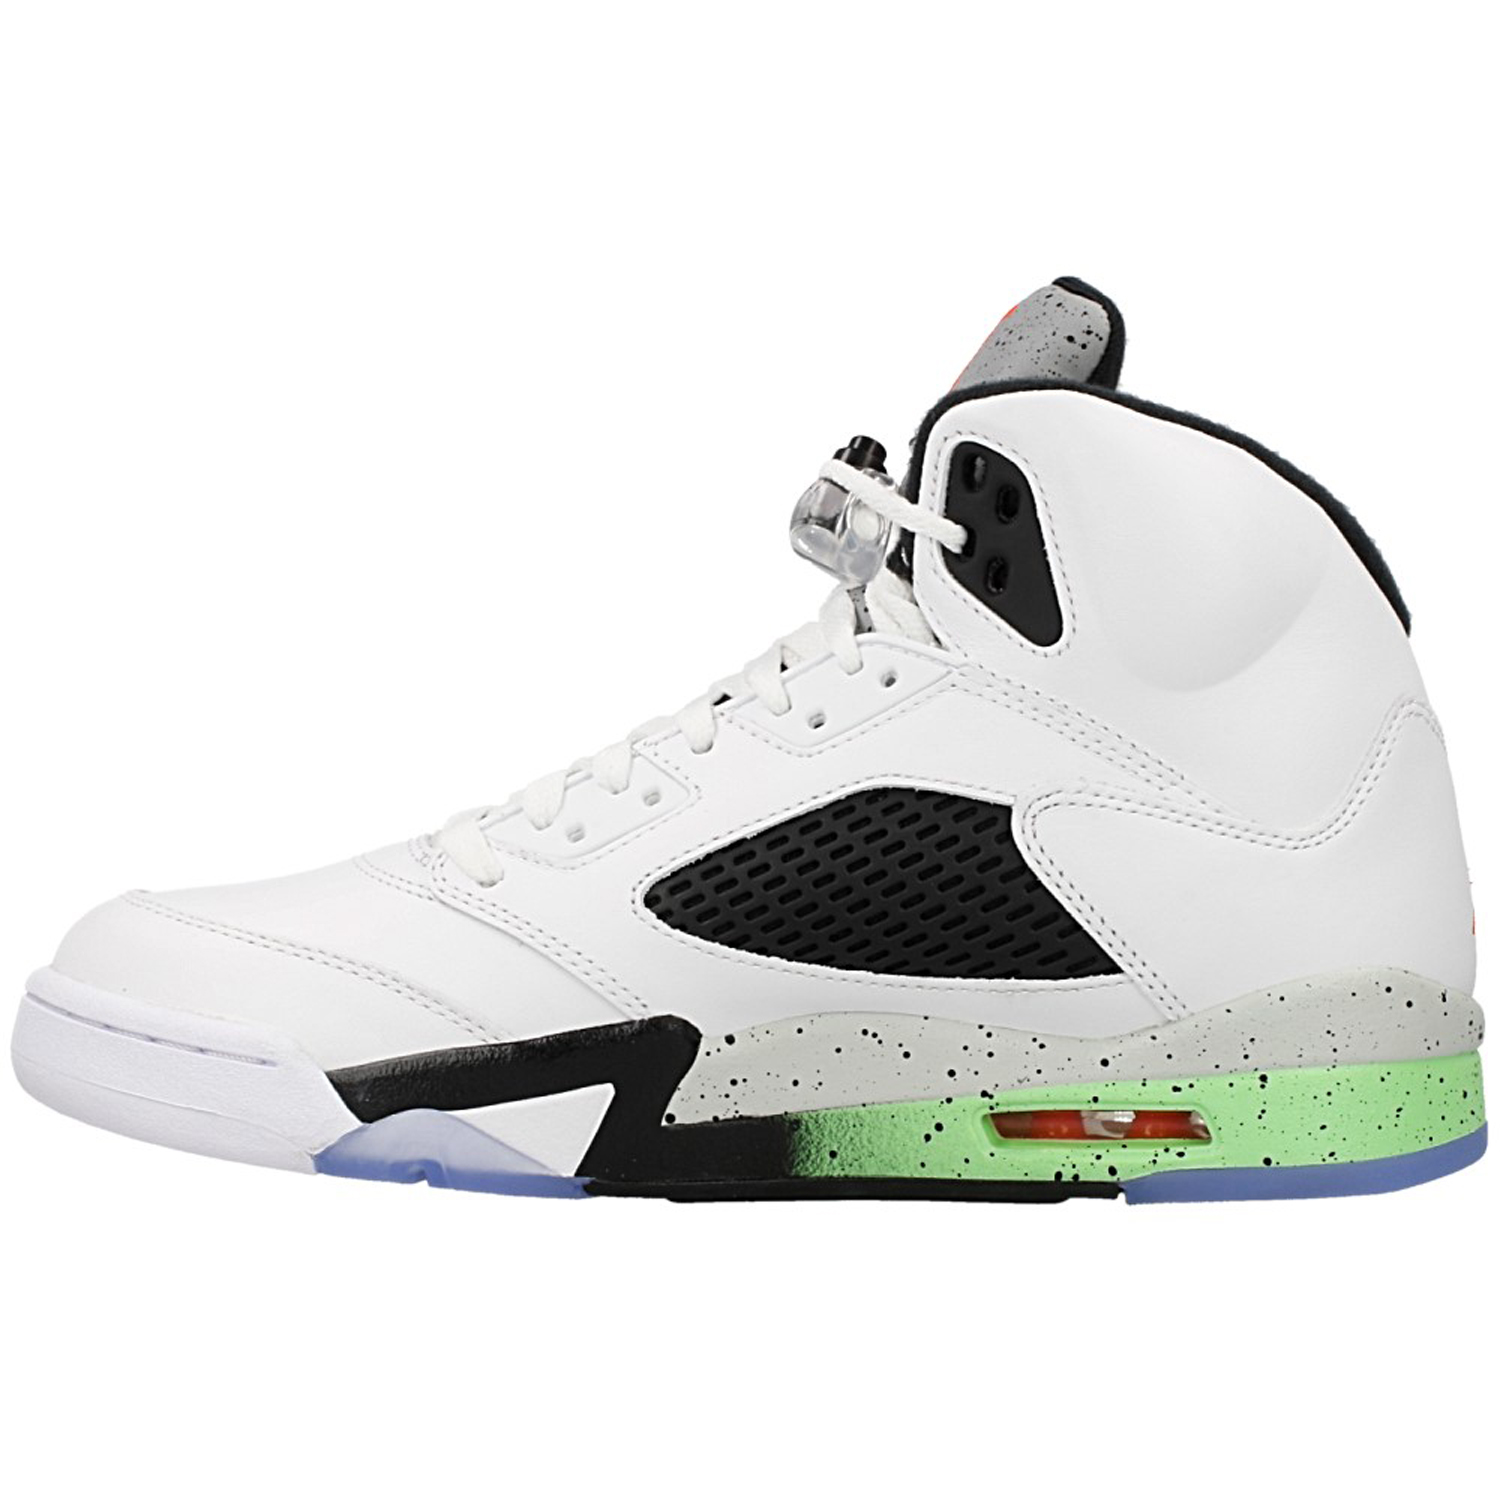 a6b8a36d7f05 Nike Air Jordan 5 Retro 136027-115 The Air Jordan Retro 5 Mens Lifestyle  Shoe features a white-based leather upper with Black detailing a  cemented speckled ...